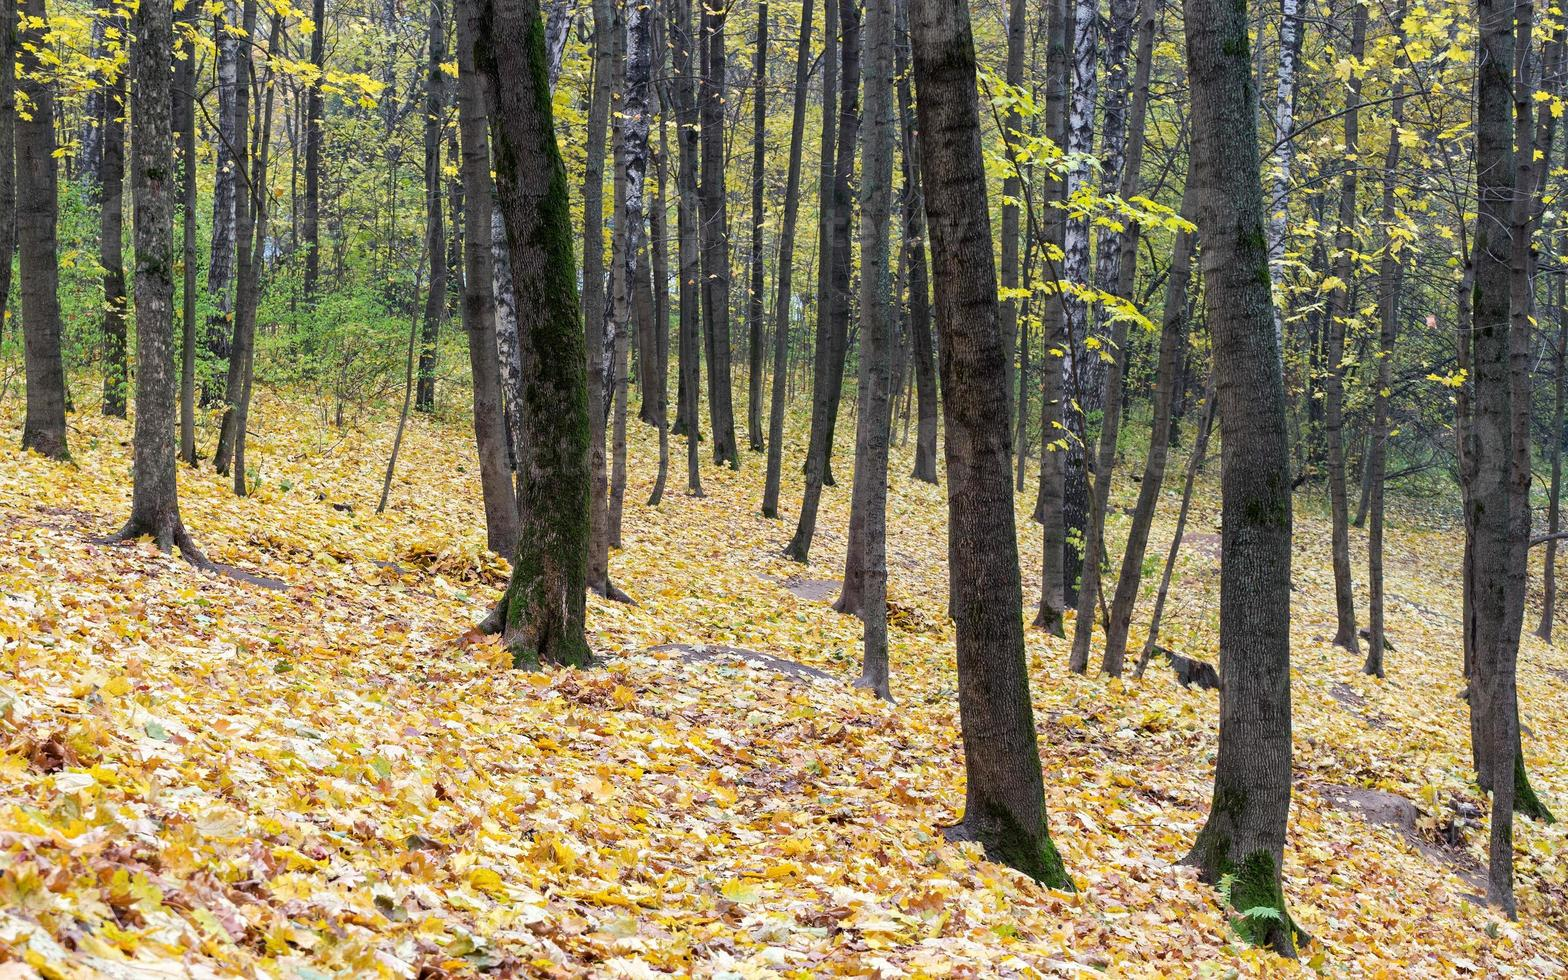 Autumn maple leaves lie in forest. Focus on foreground. photo